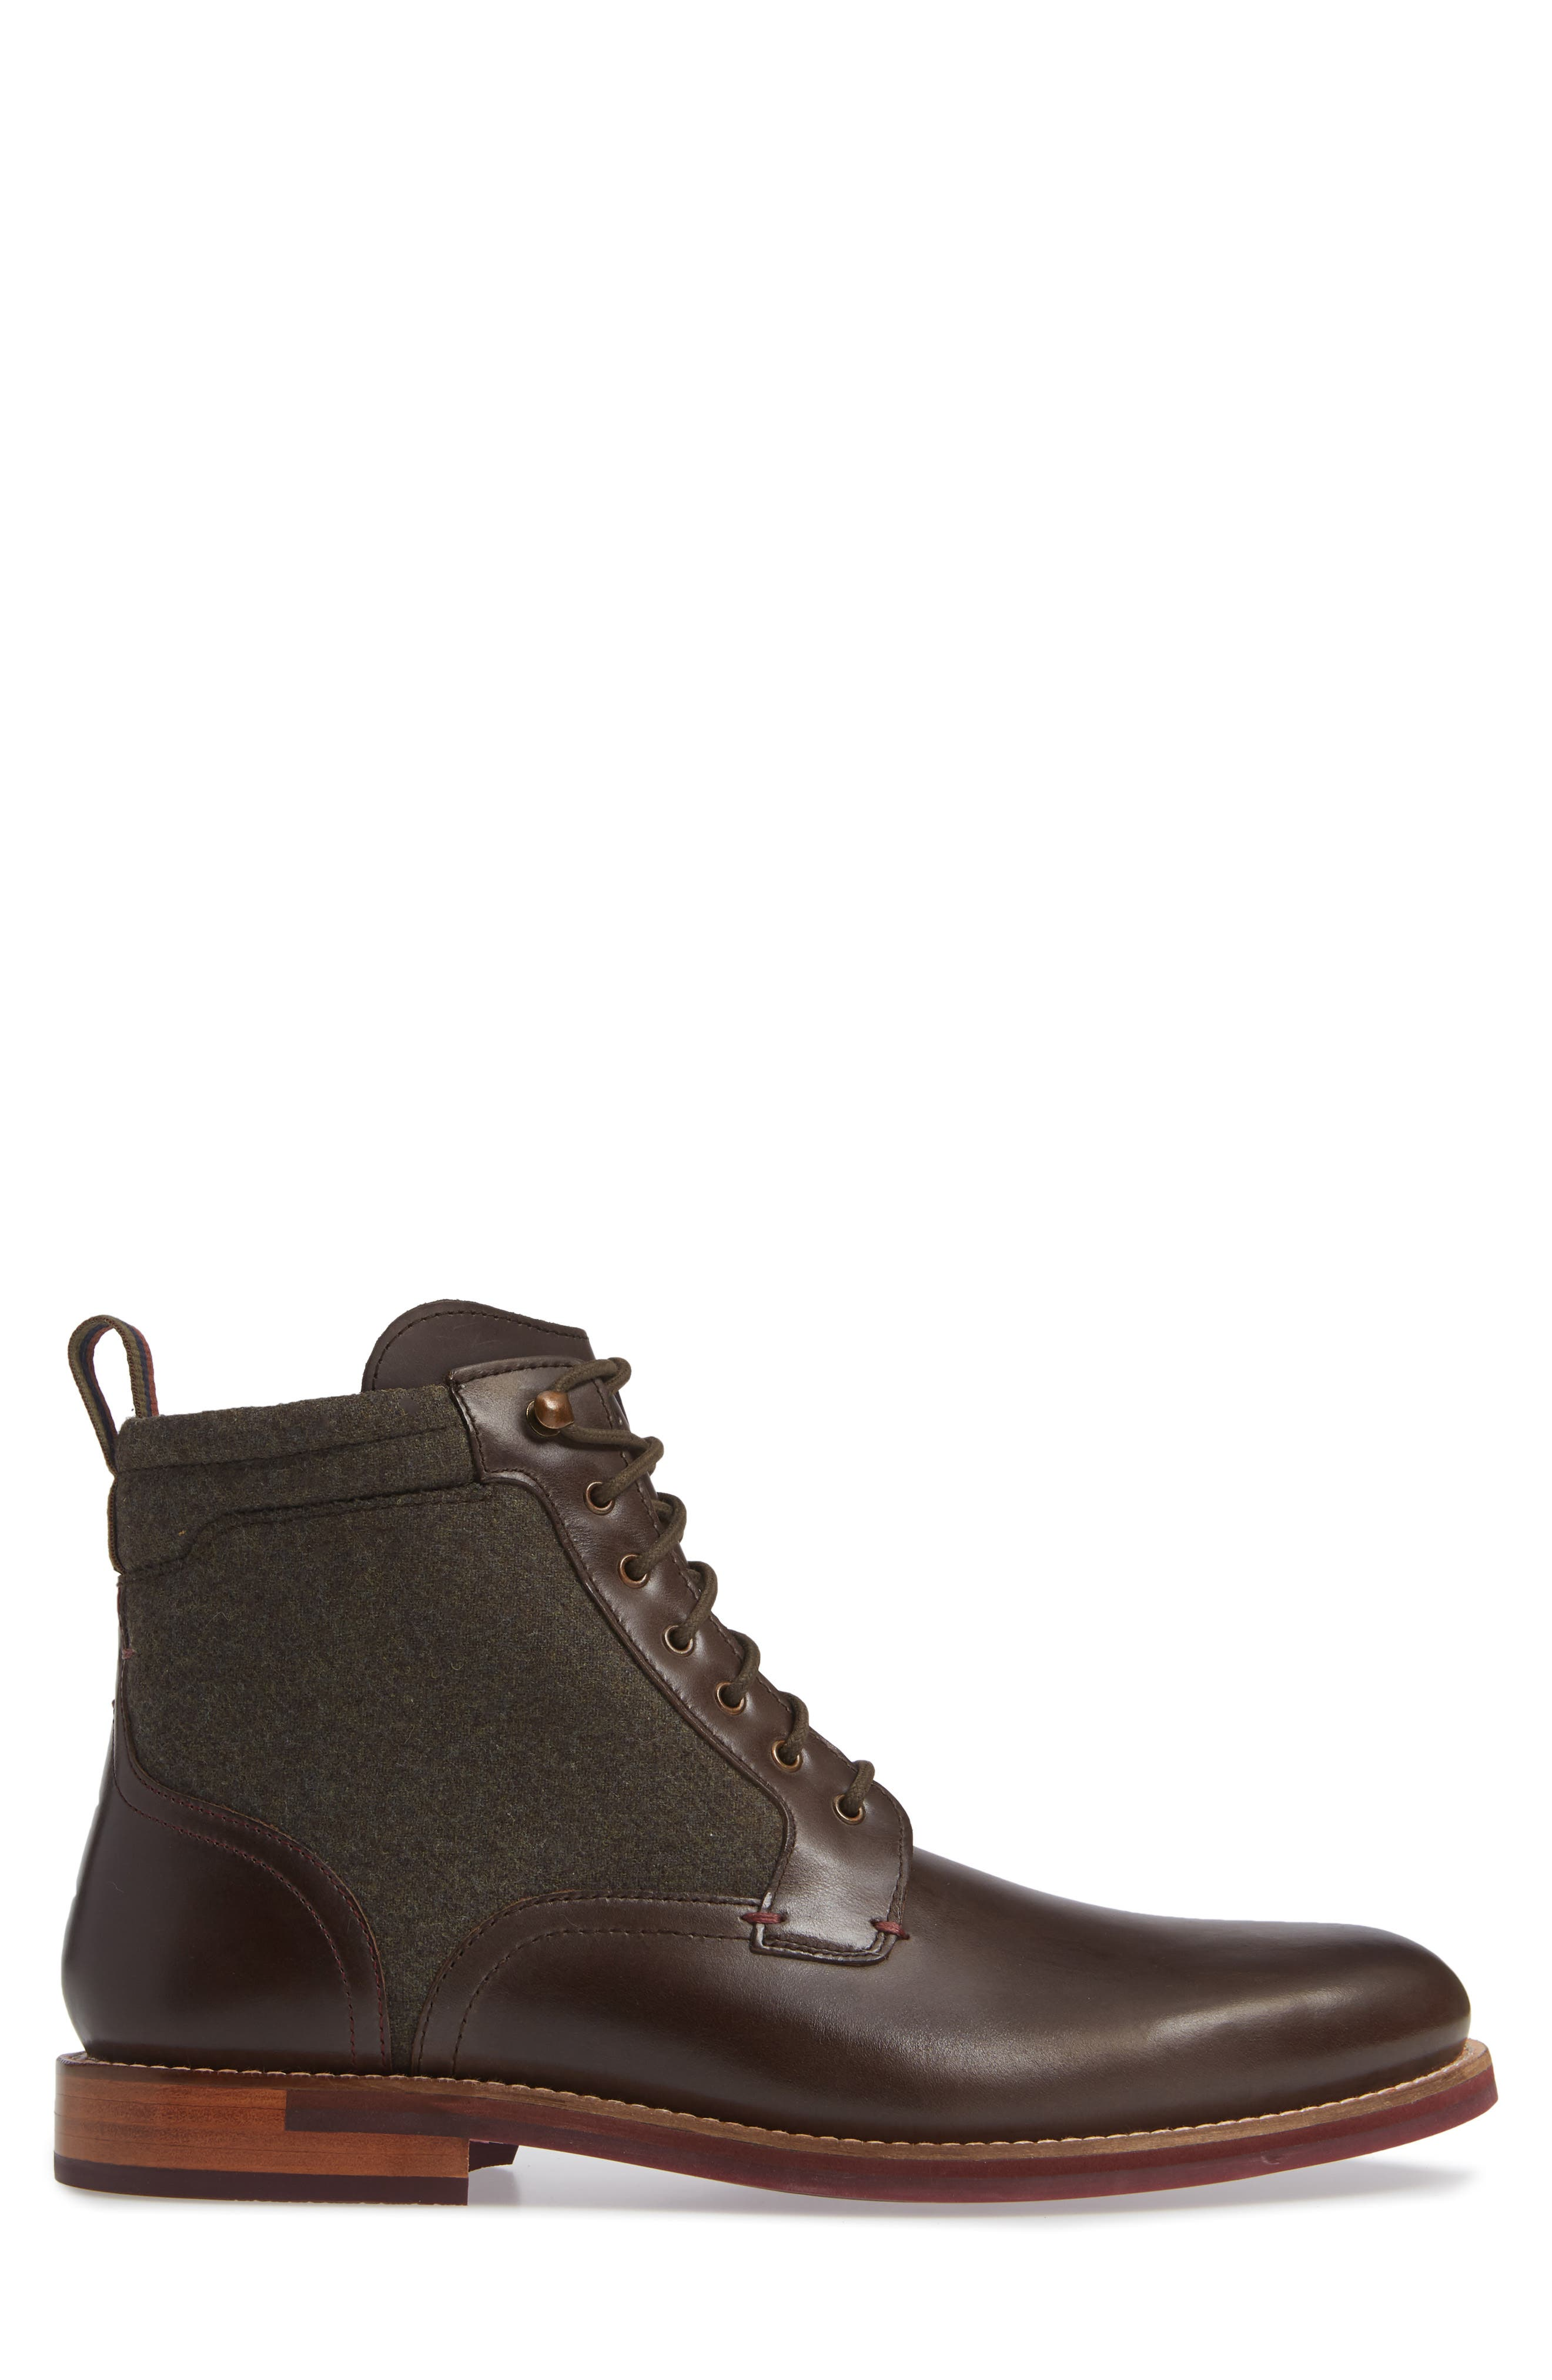 Axtoni Boot,                             Alternate thumbnail 3, color,                             BROWN LEATHER